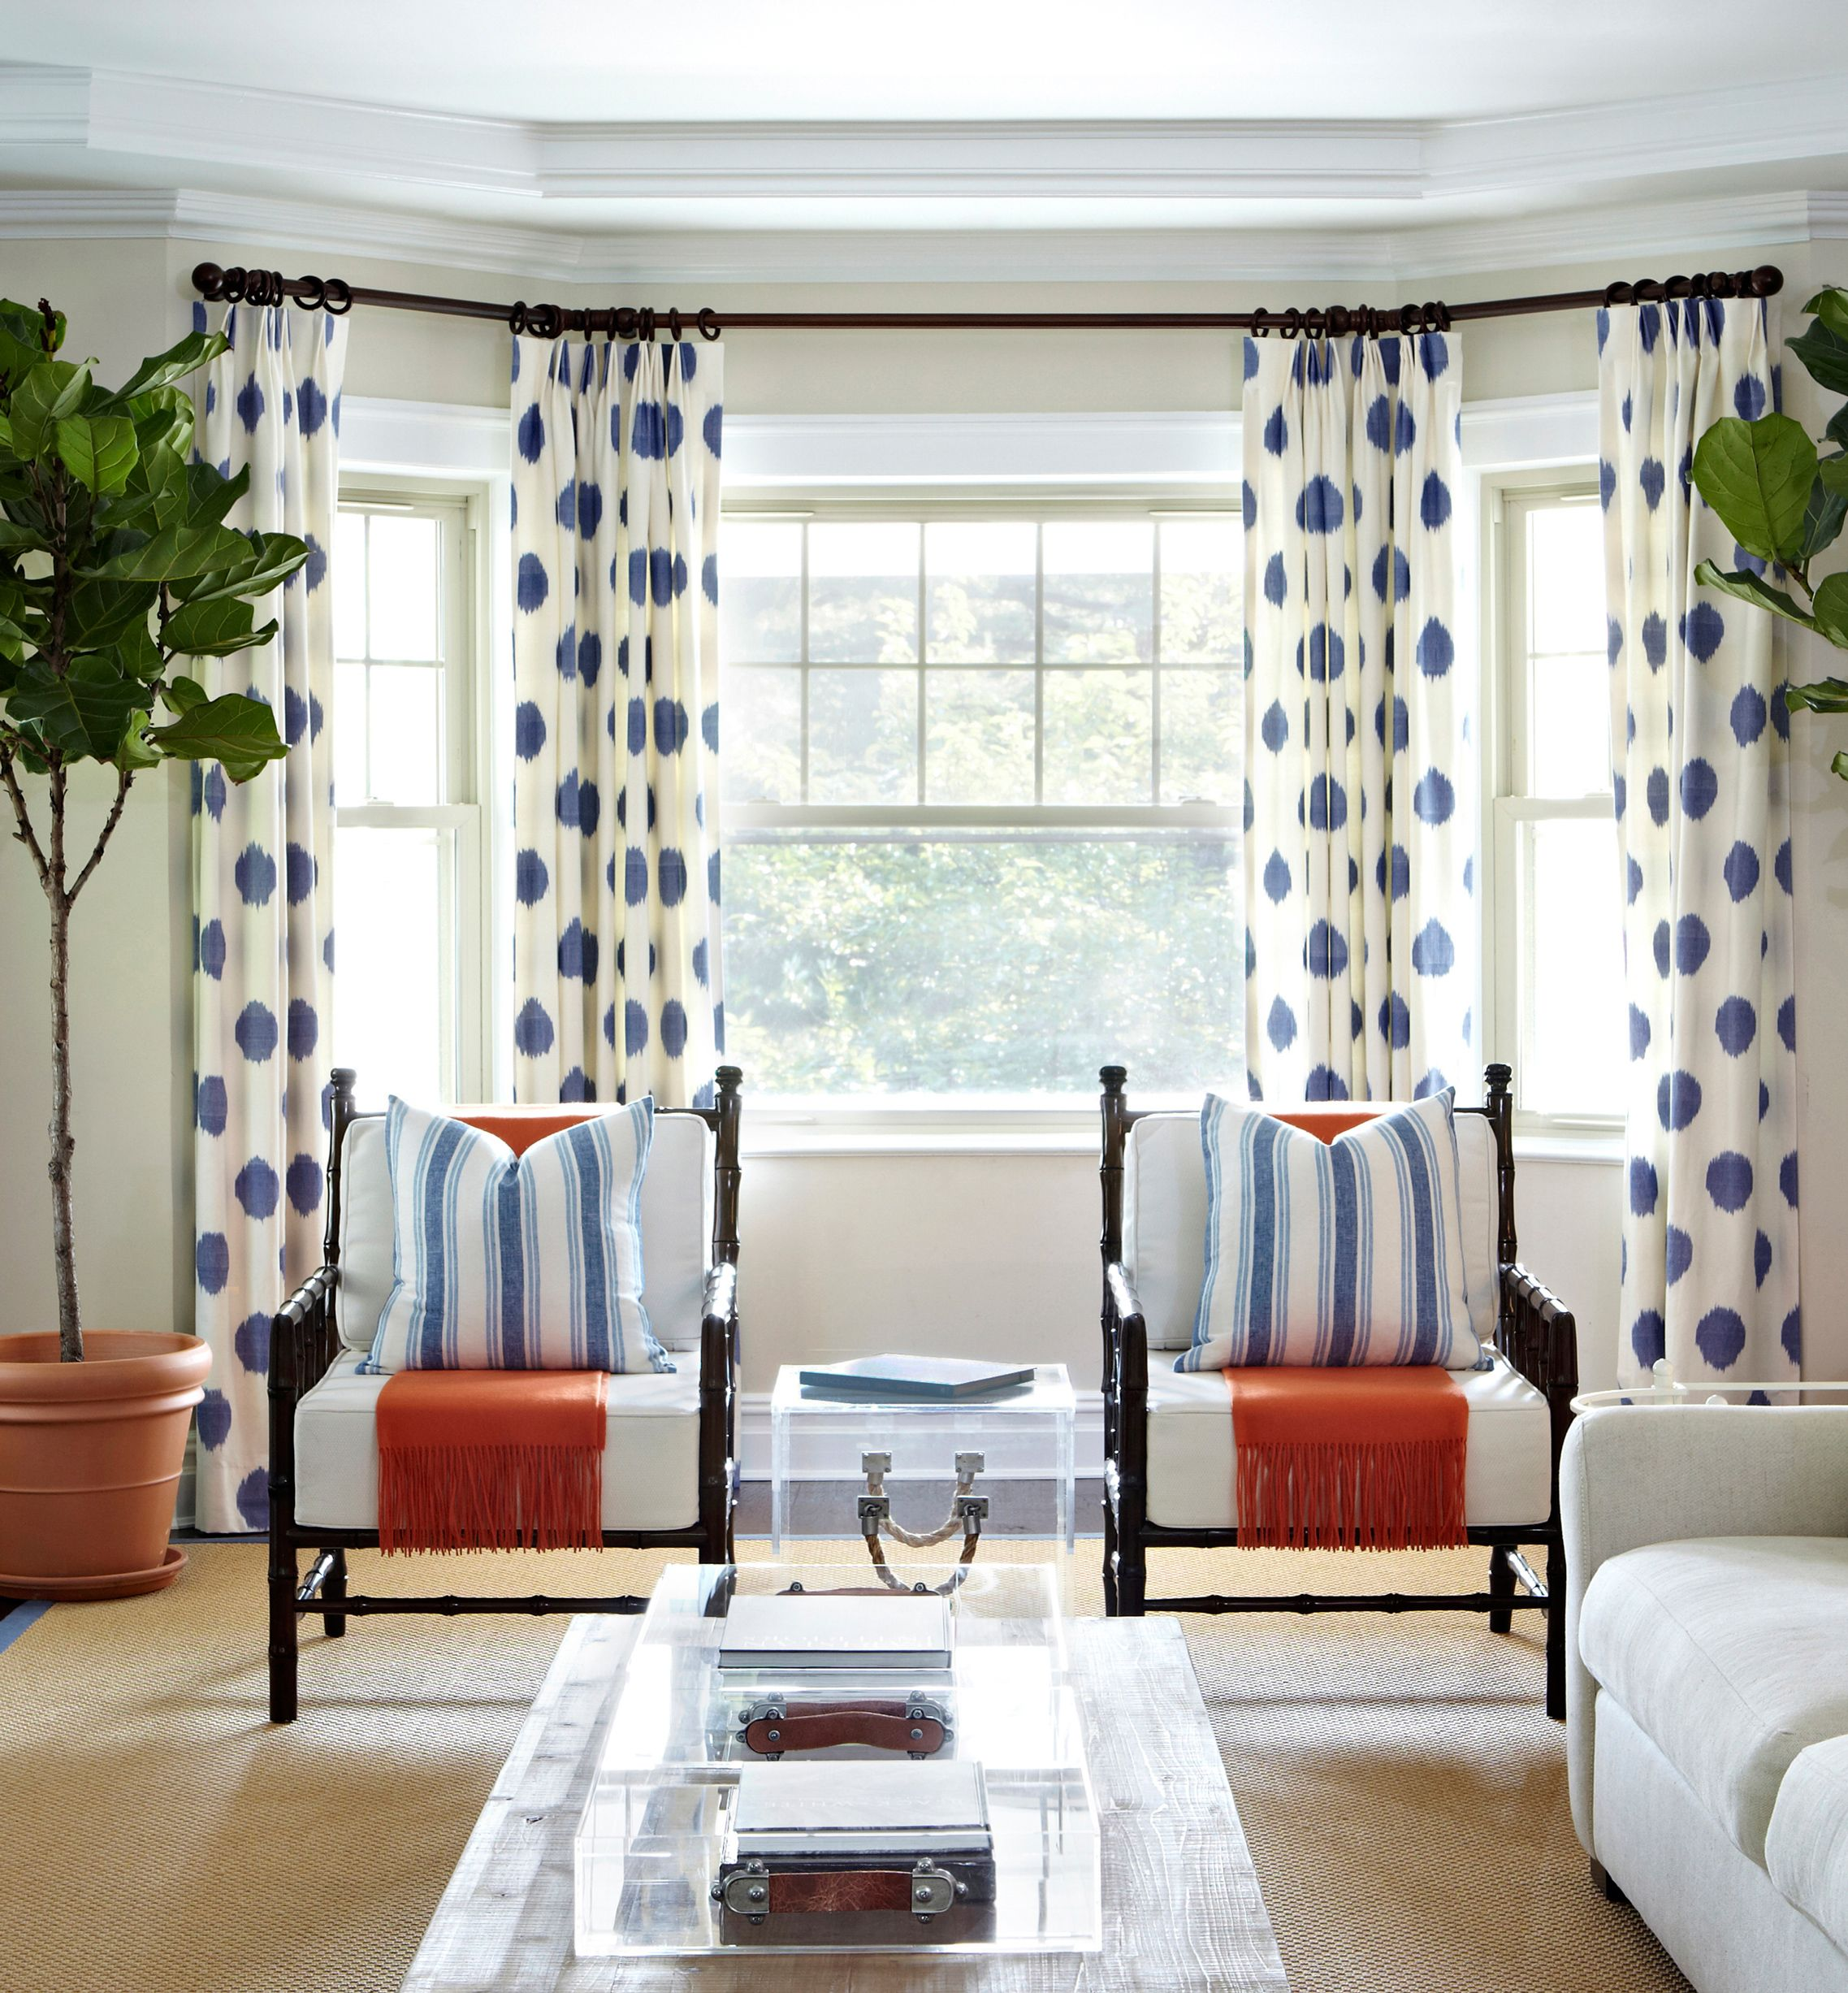 baton interior rouge furniture pinterest pin classic and drapes provasi